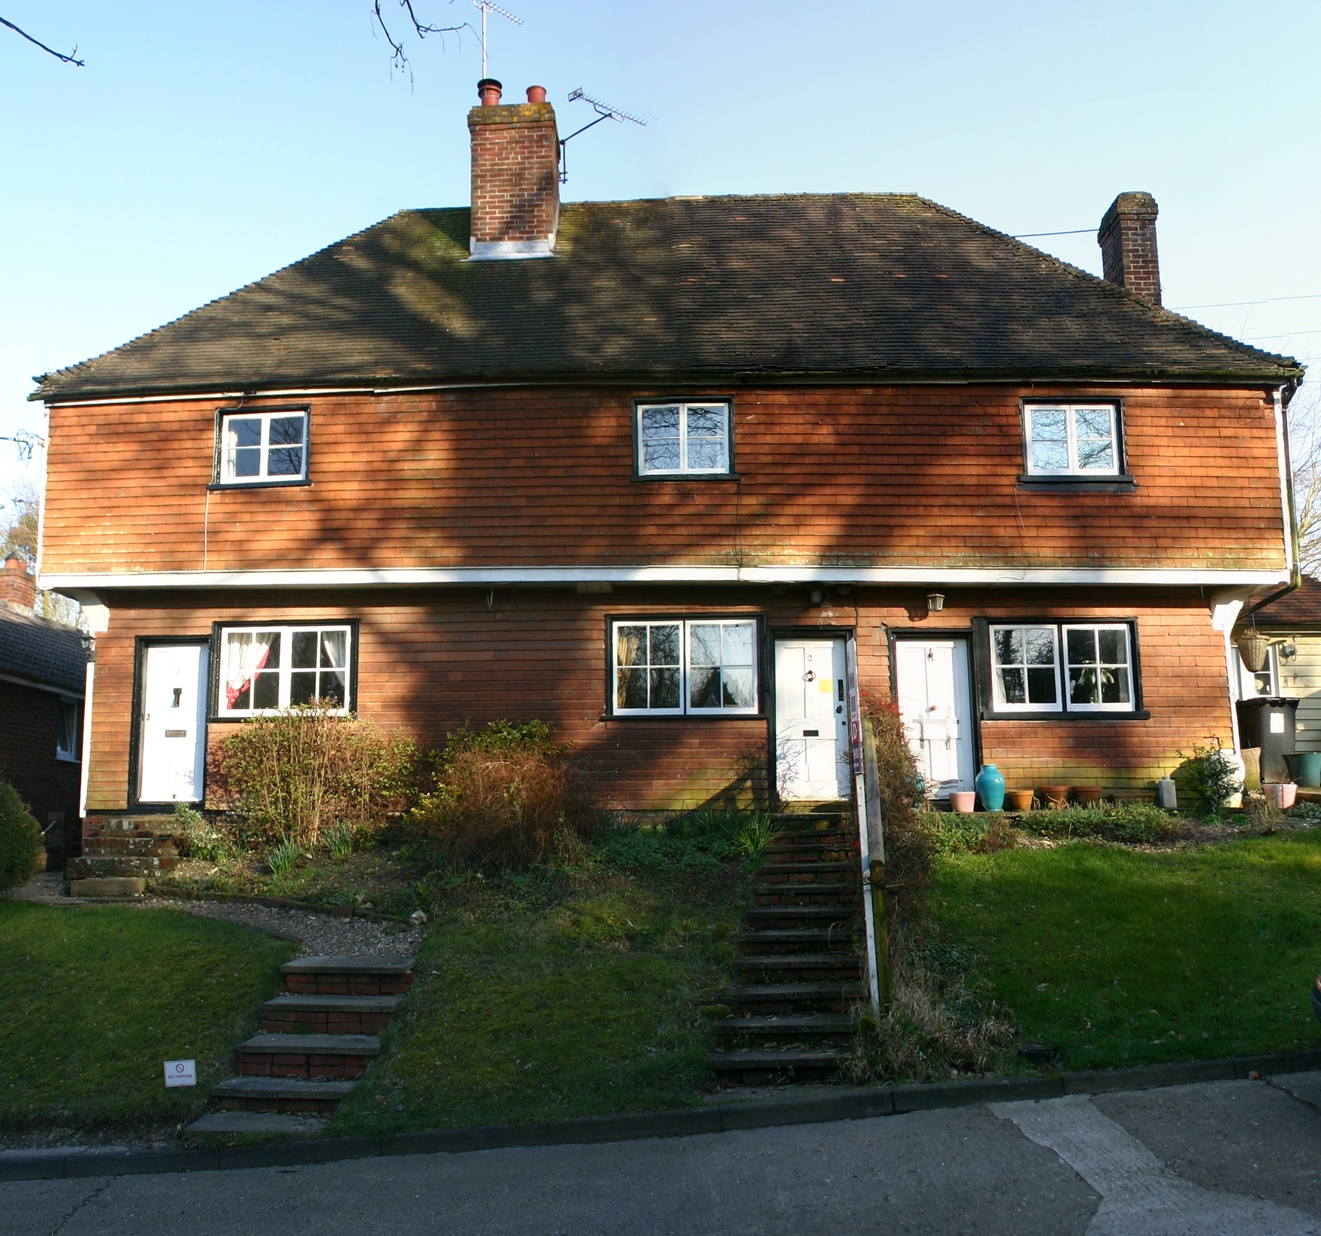 2 Bank Cottages, Canterbury, Loft conversion and refurbishment to Grade 2 listed 17th Century, timber framed building.